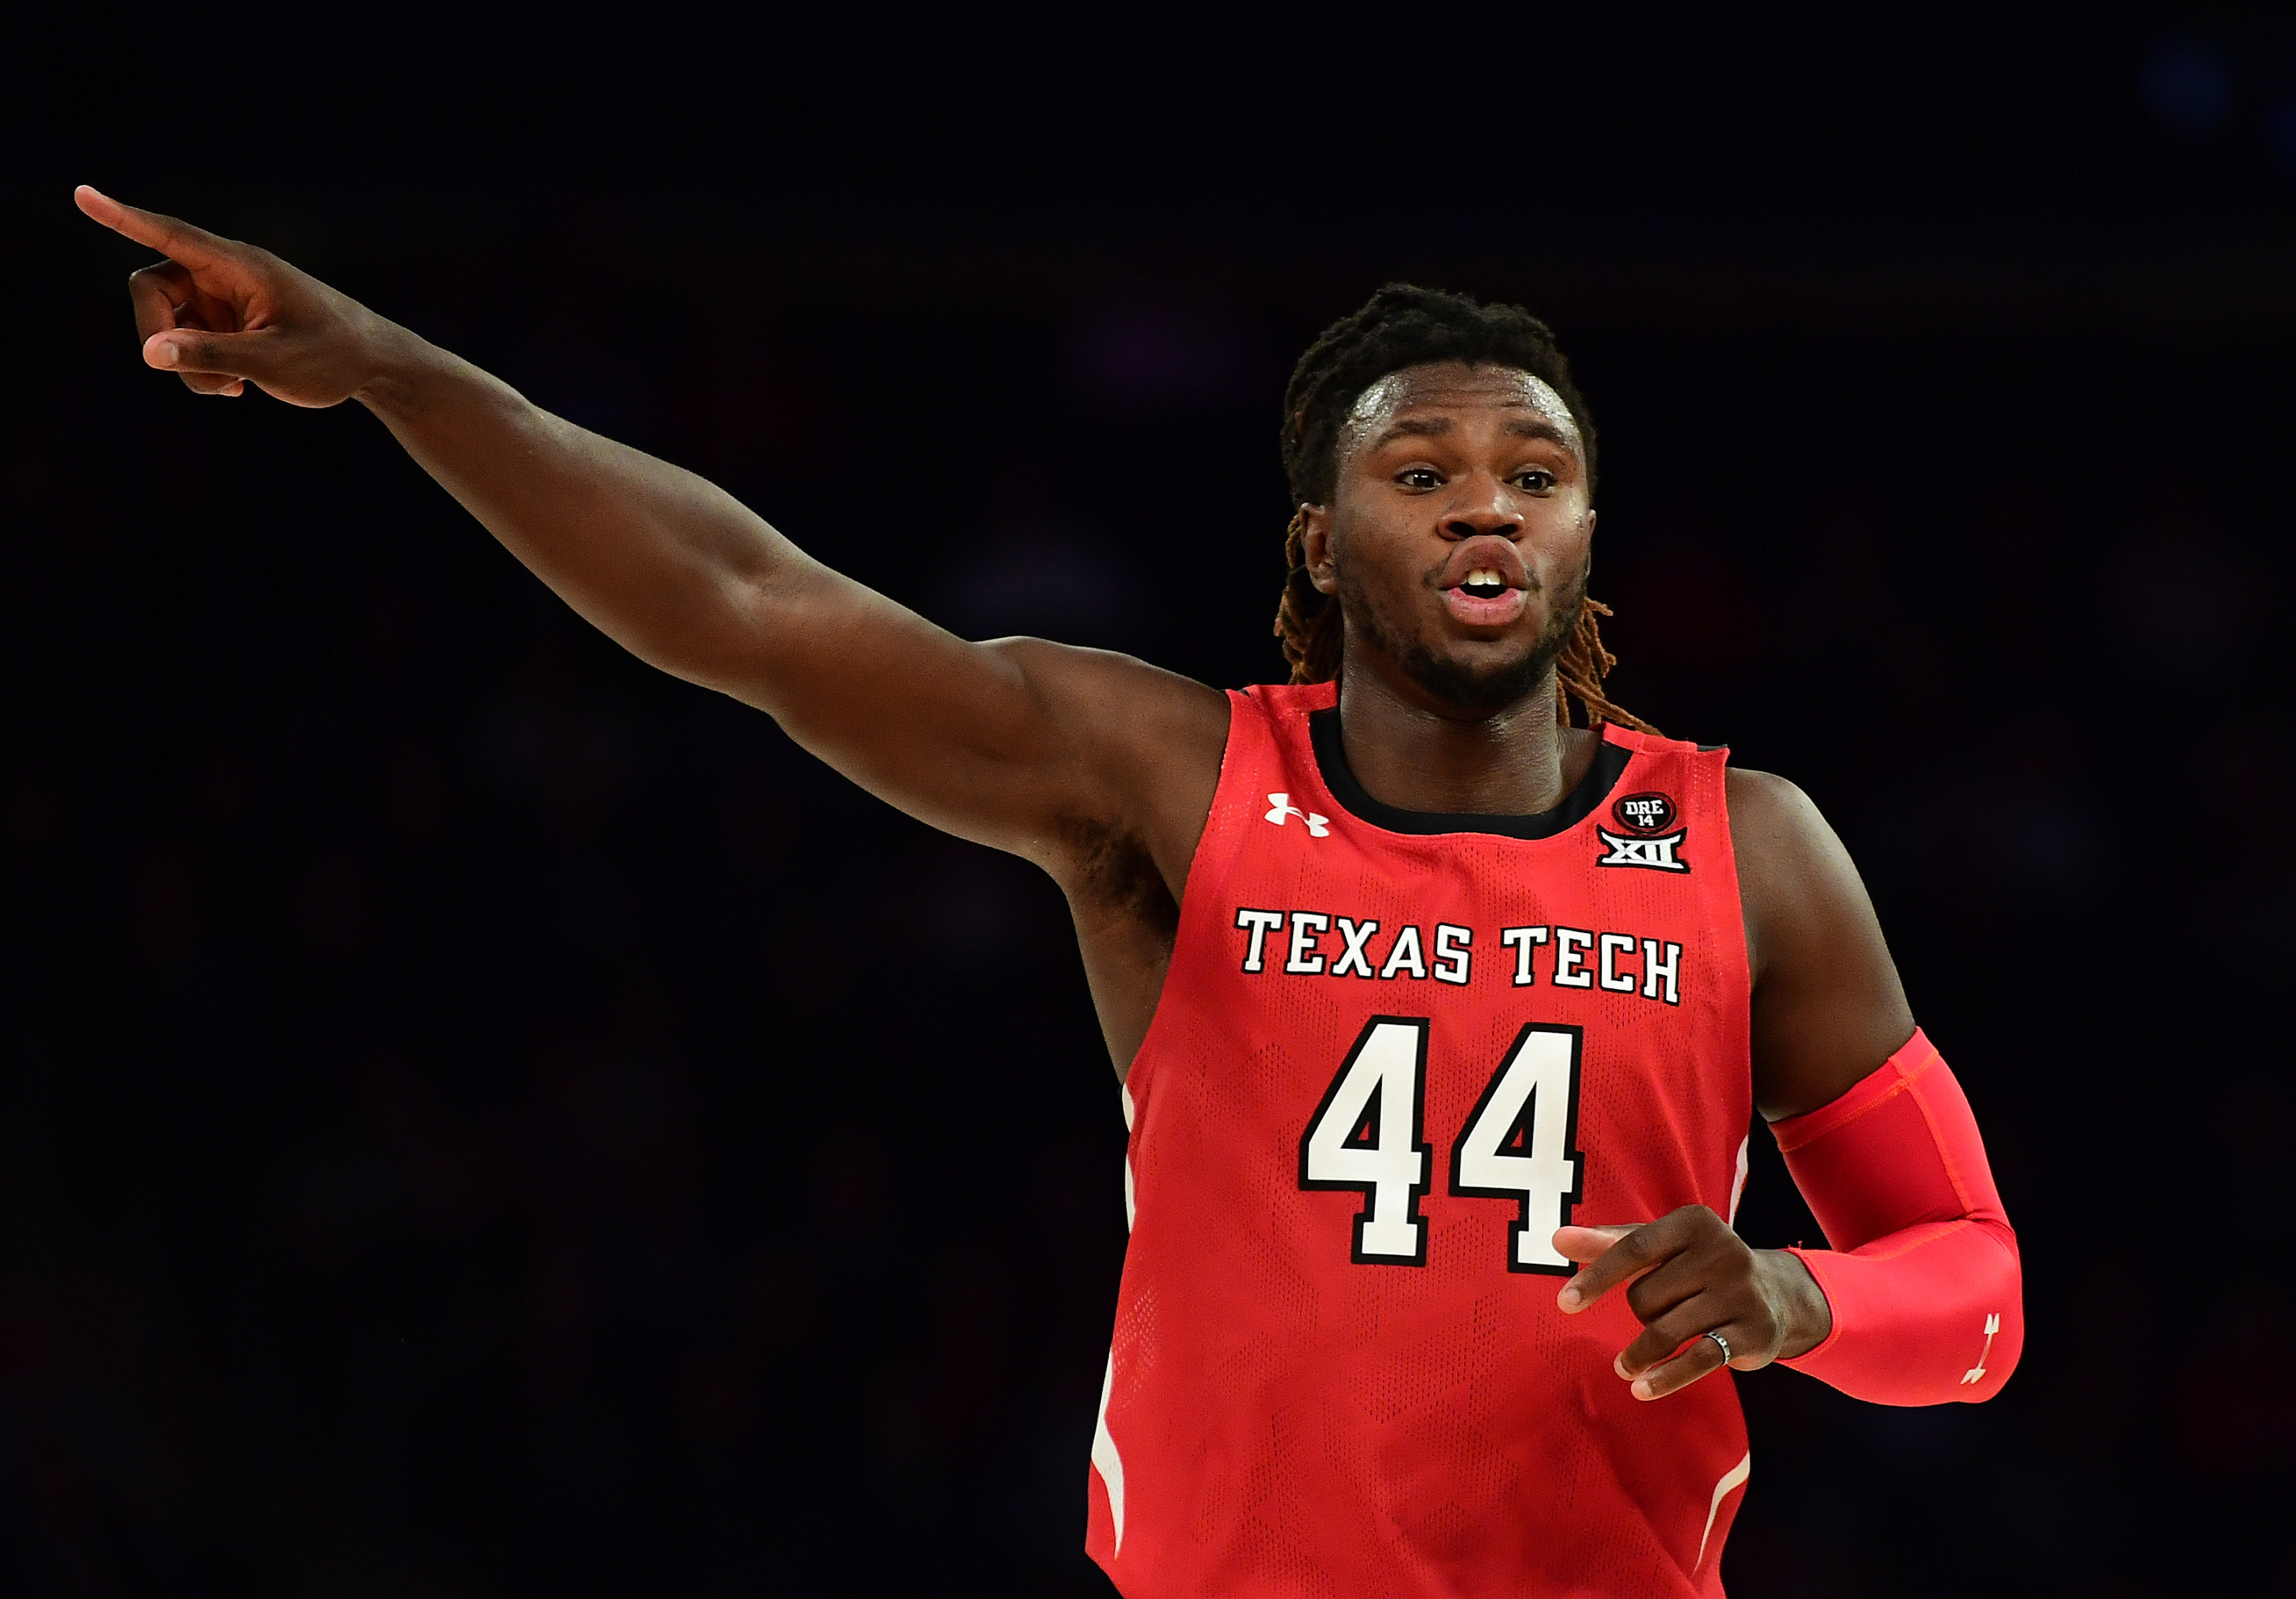 Texas Tech Basketball Players That Need To Step Up Against Iowa State